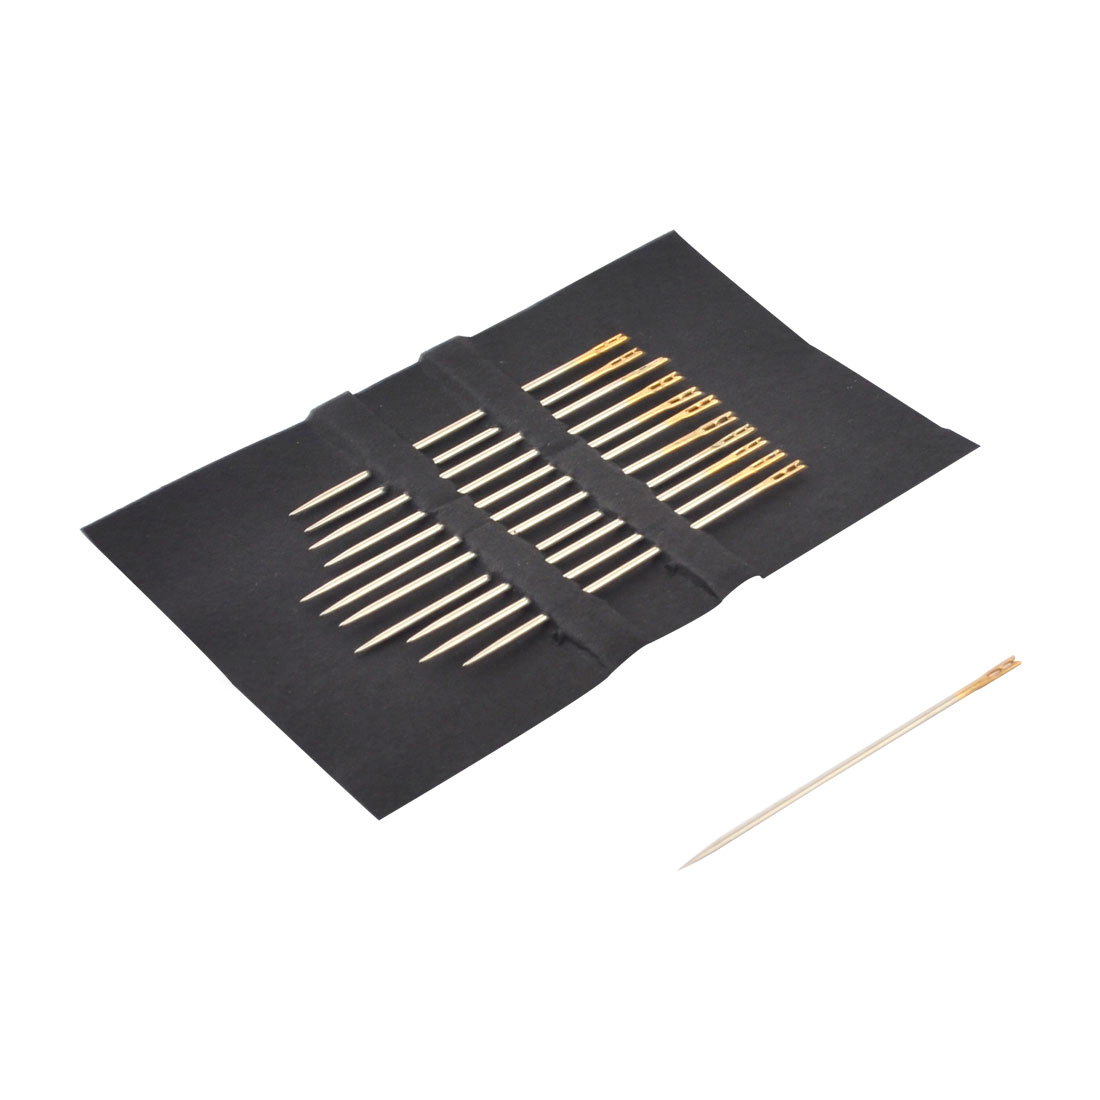 Home Sewing Machine Knitters Hand Embroidery Metal Threading Needles 12pcs